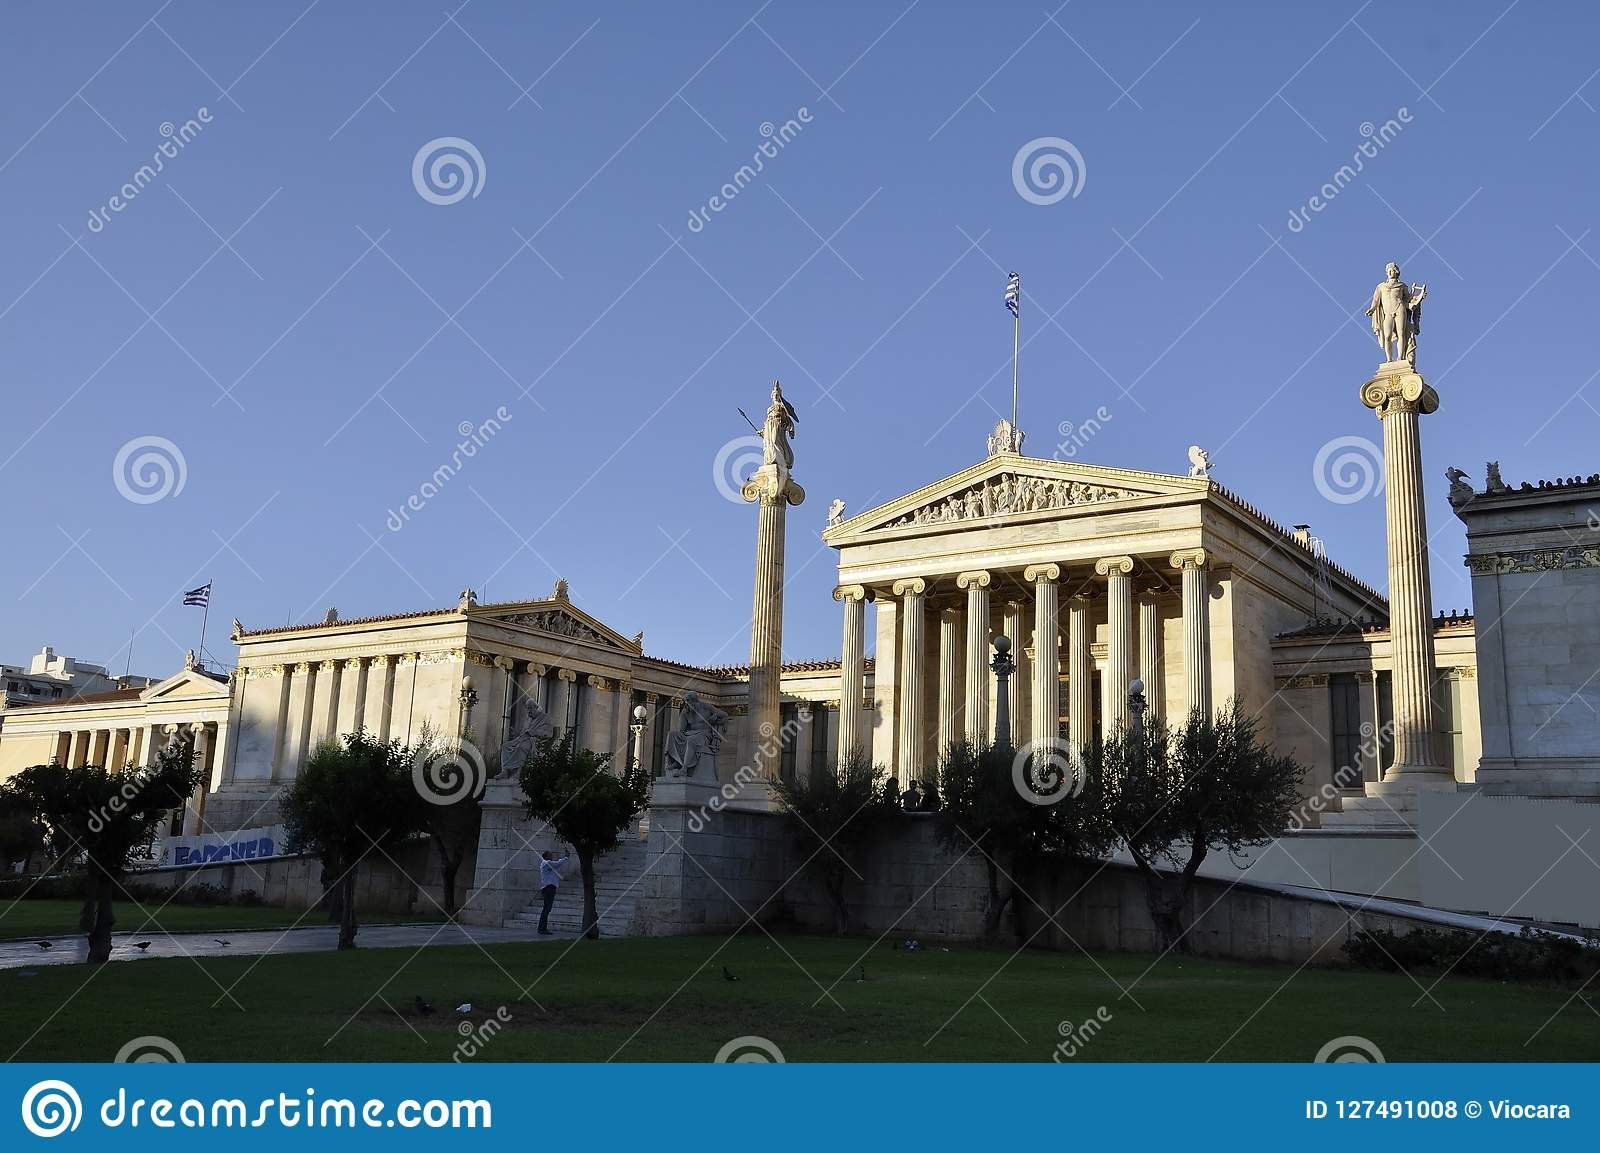 Academy of Athens Landmark at sunset in Greece